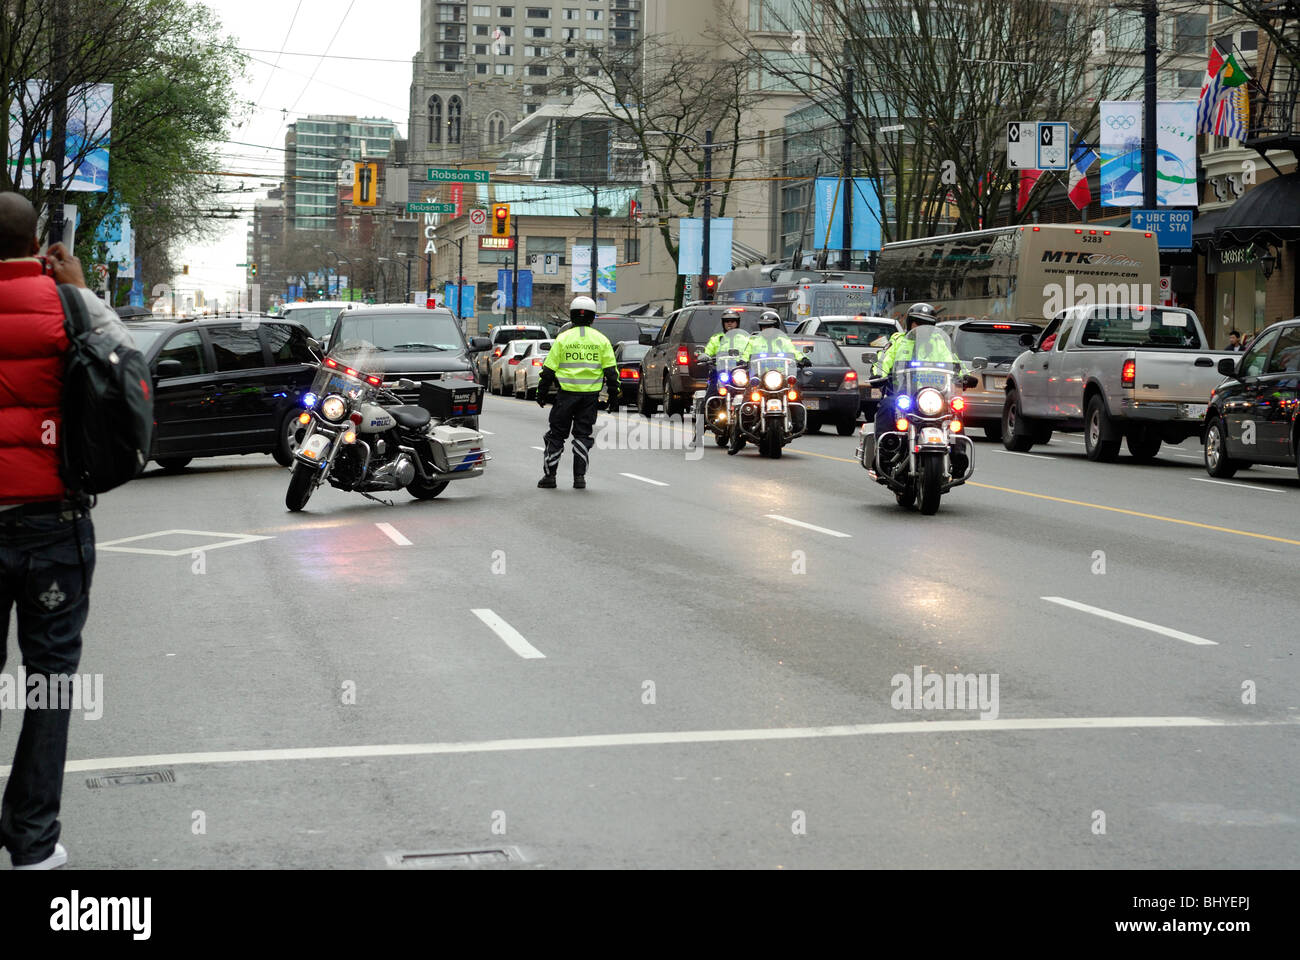 Vancouver Police clearing and blocking the roadway to allow officials and delegates easy access. - Stock Image